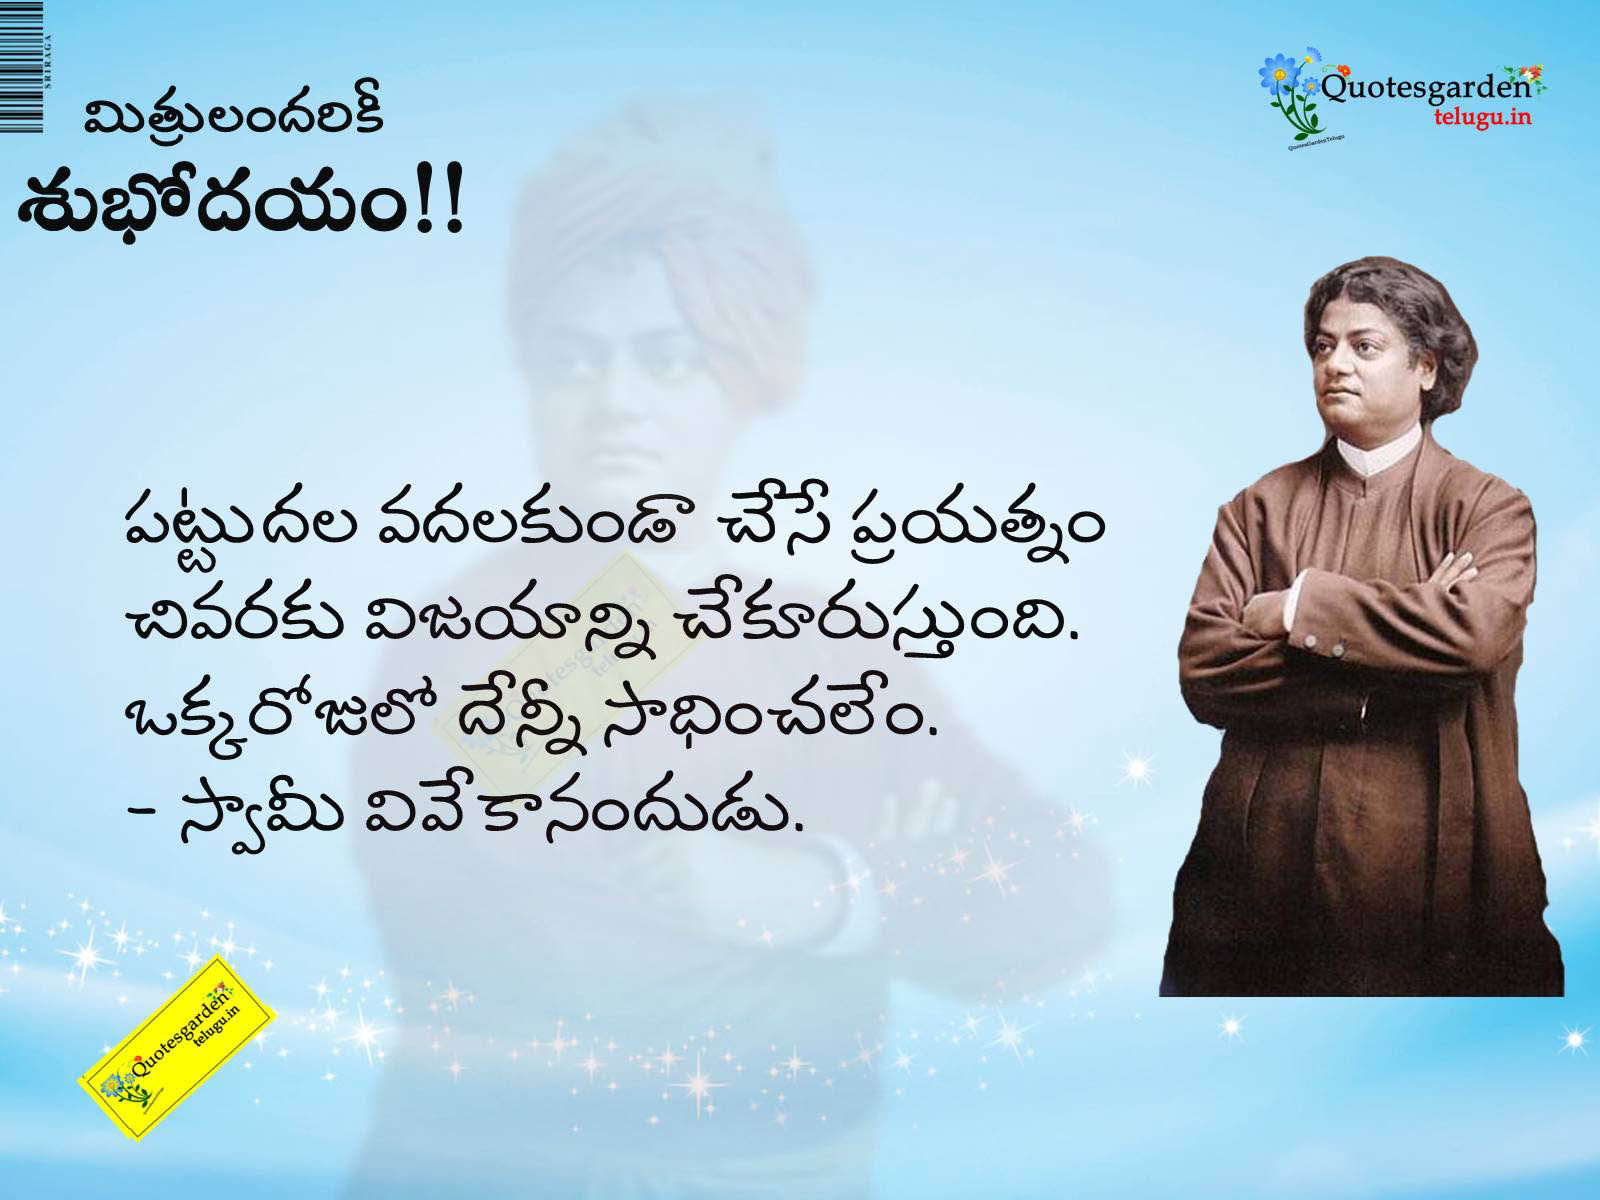 swami vivekananda inspirational quotes about goal settings